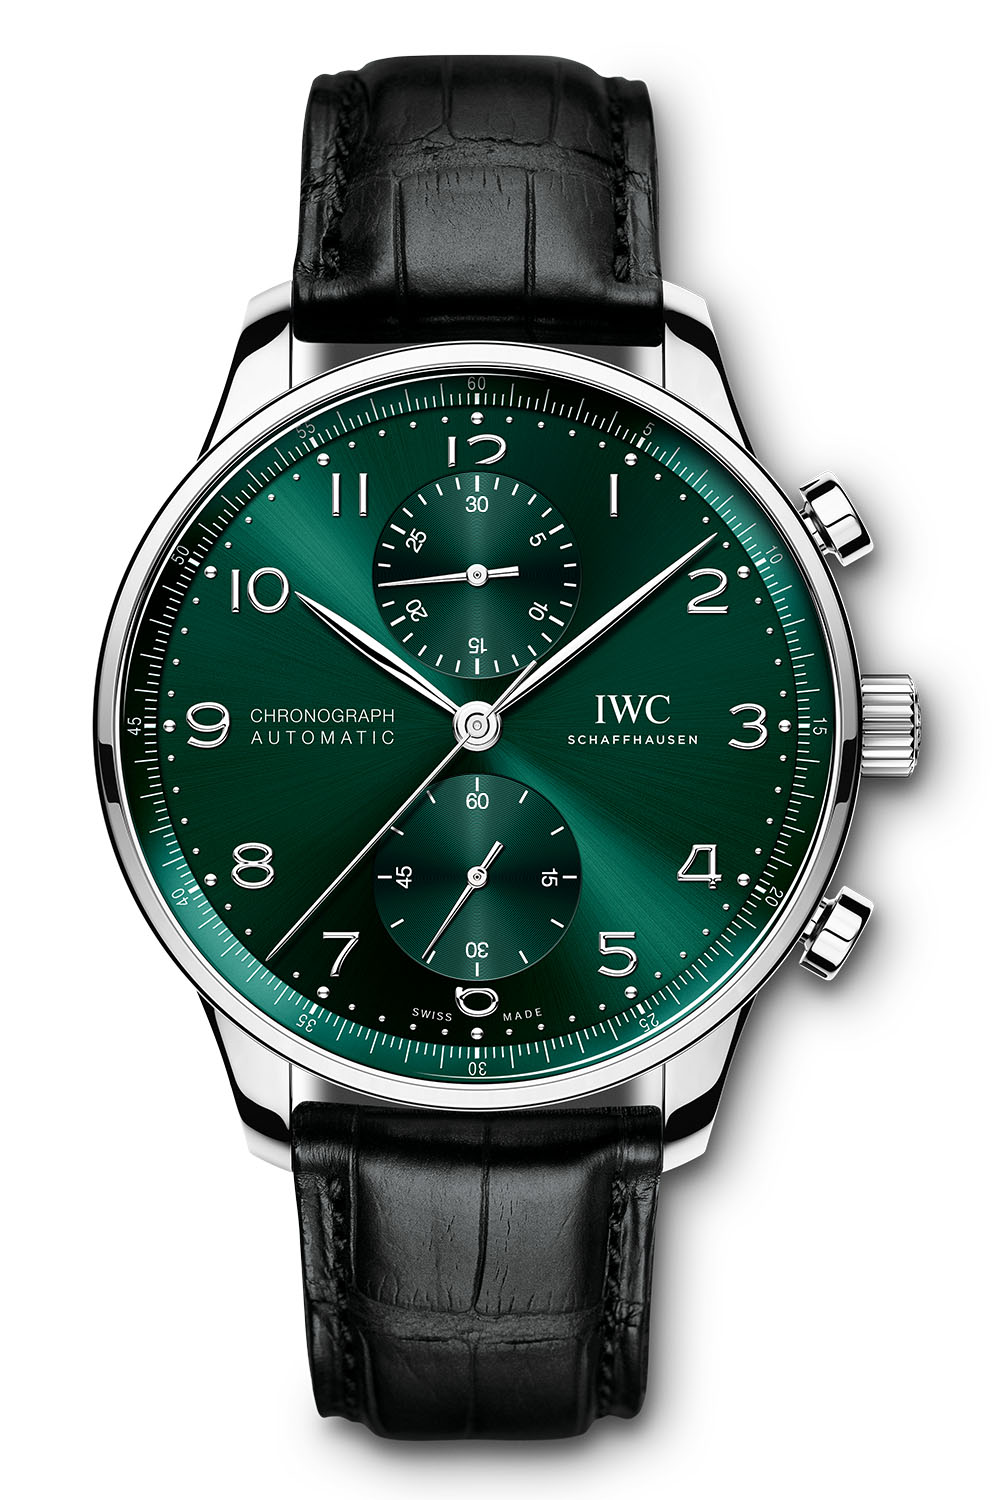 IWC Portugieser Chronograph automatic green dial iw371615 - 1